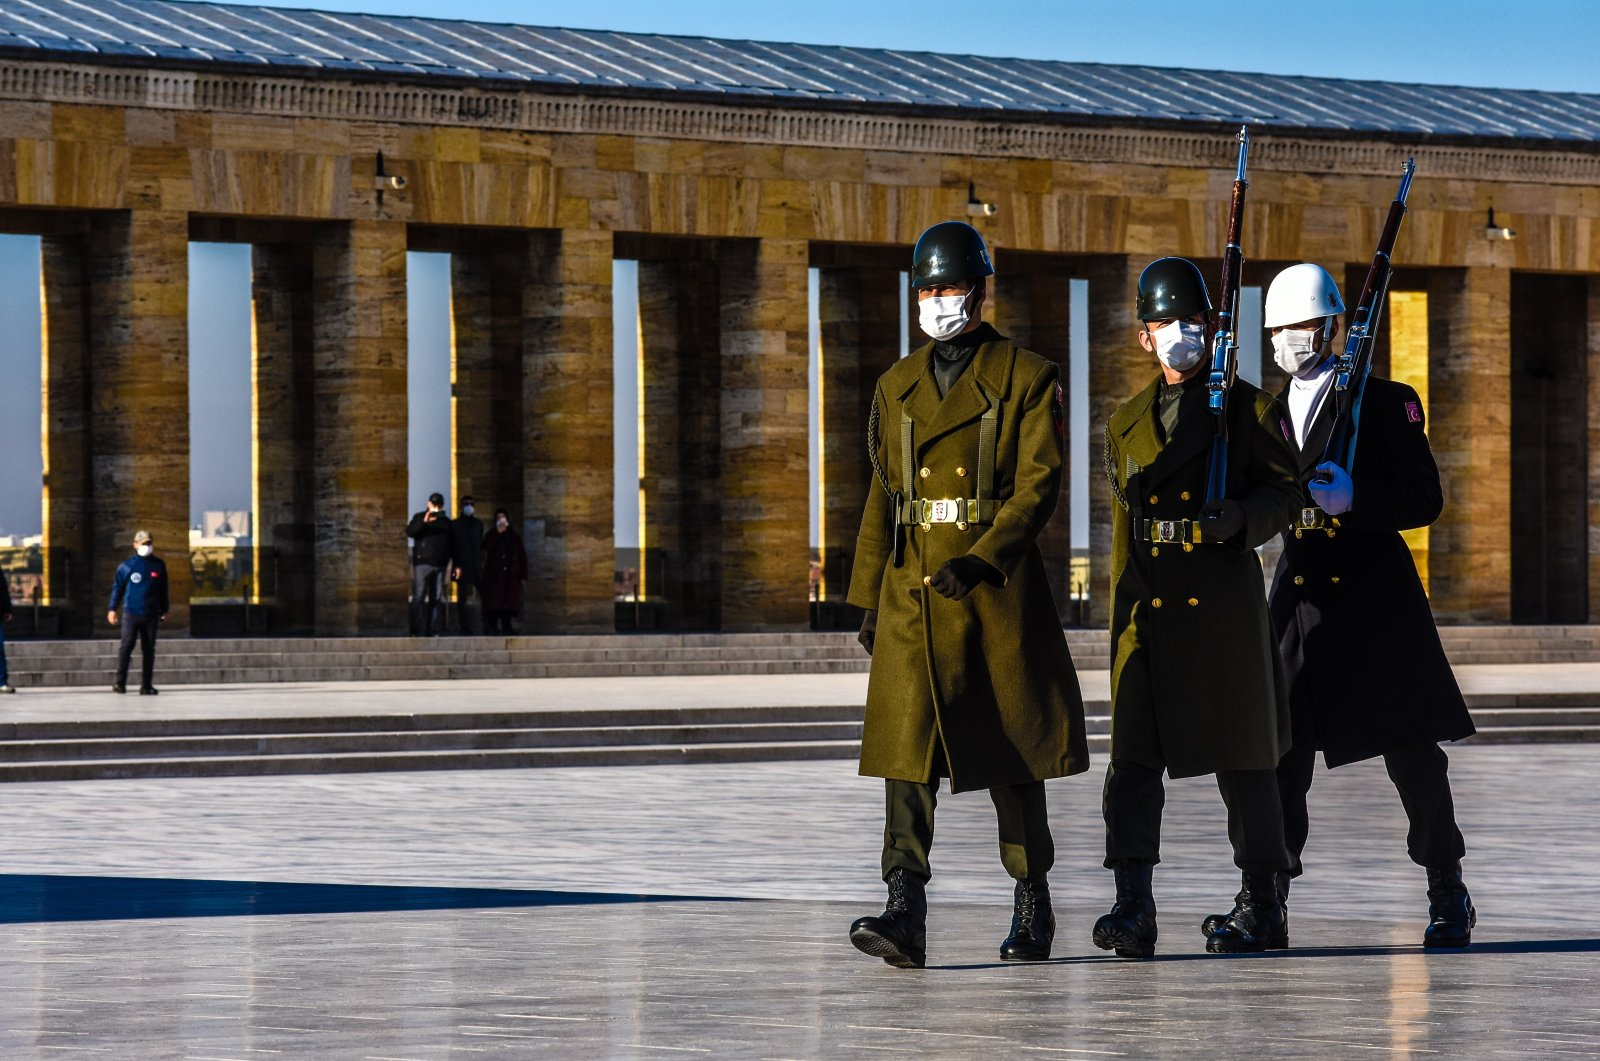 Turkish soldiers wearing protective face masks march during the changing of the guards at Anıtkabir, the mausoleum of modern Turkey's founder, Mustafa Kemal Atatürk, Ankara, Turkey, Nov. 28, 2020. (Photo by Getty Images)